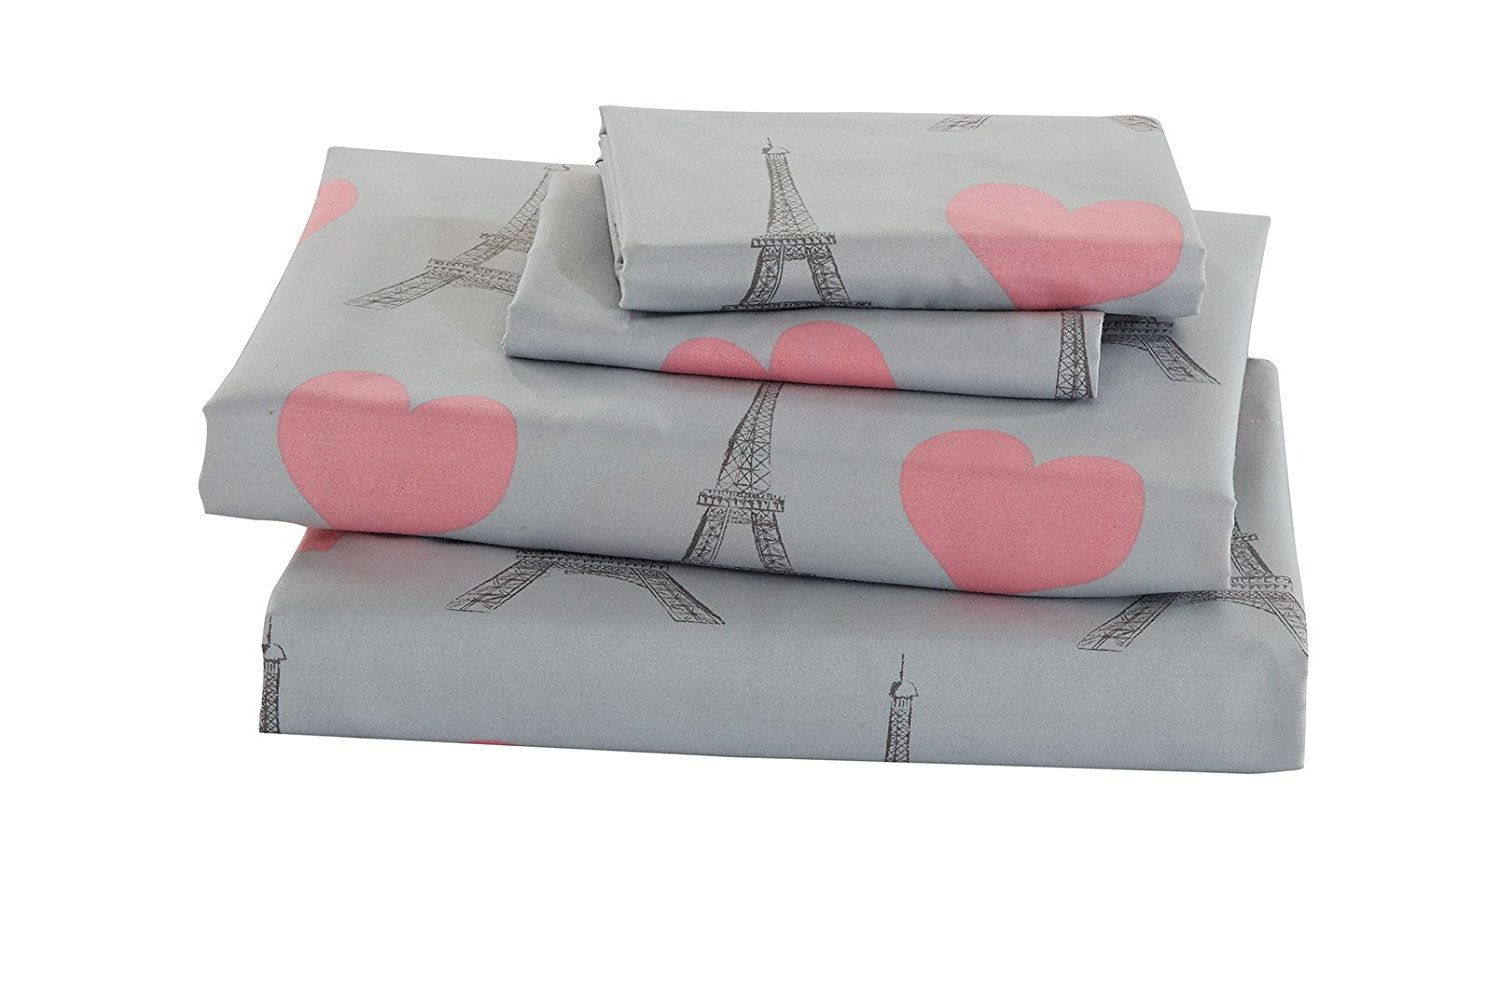 Elegant Home Multicolors Pink Grey Paris Eiffel Tower Bonjour Design with Hearts Fun 4 Piece Printed Full Size Sheet Set with Pillowcases Flat Fitted Sheet for Girls/Kids/Teens # Paris (Full Size)